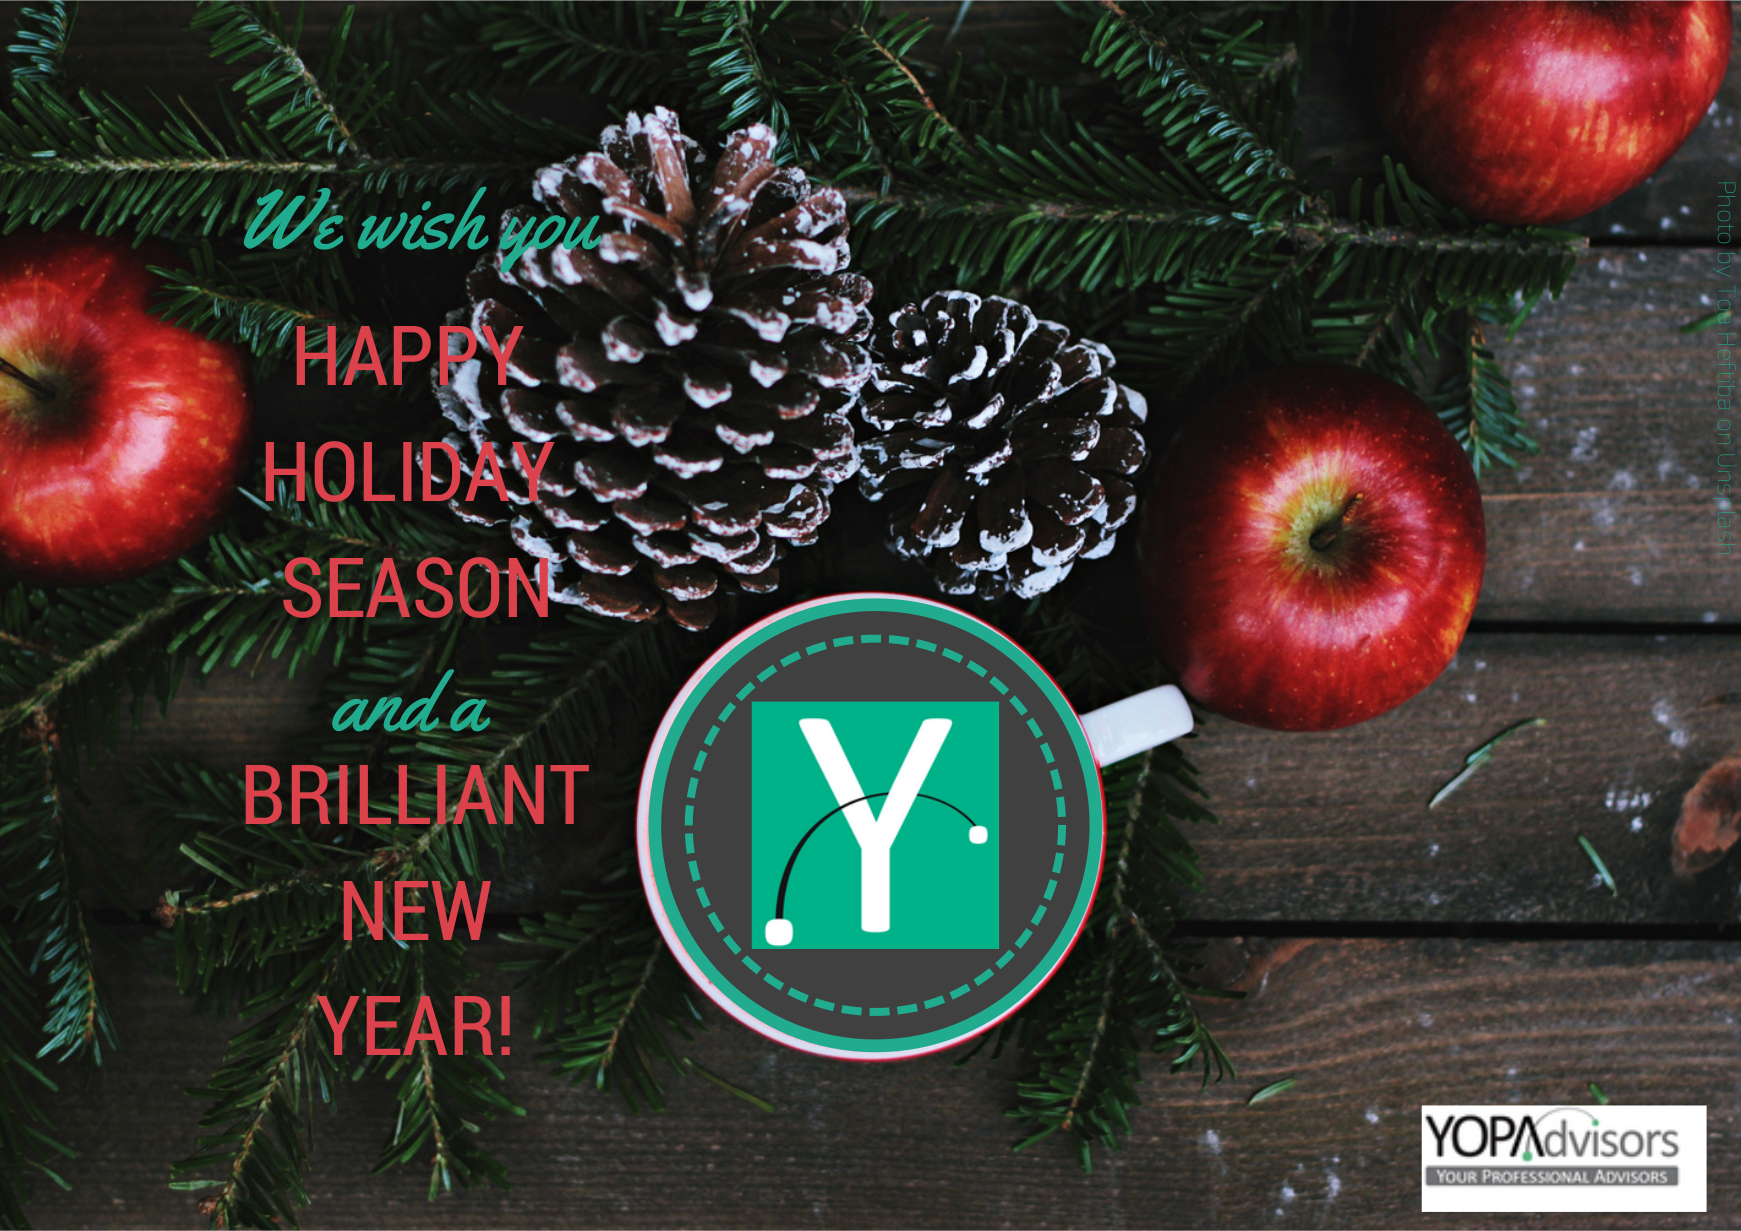 We wish you a merry YOPA Christmas!